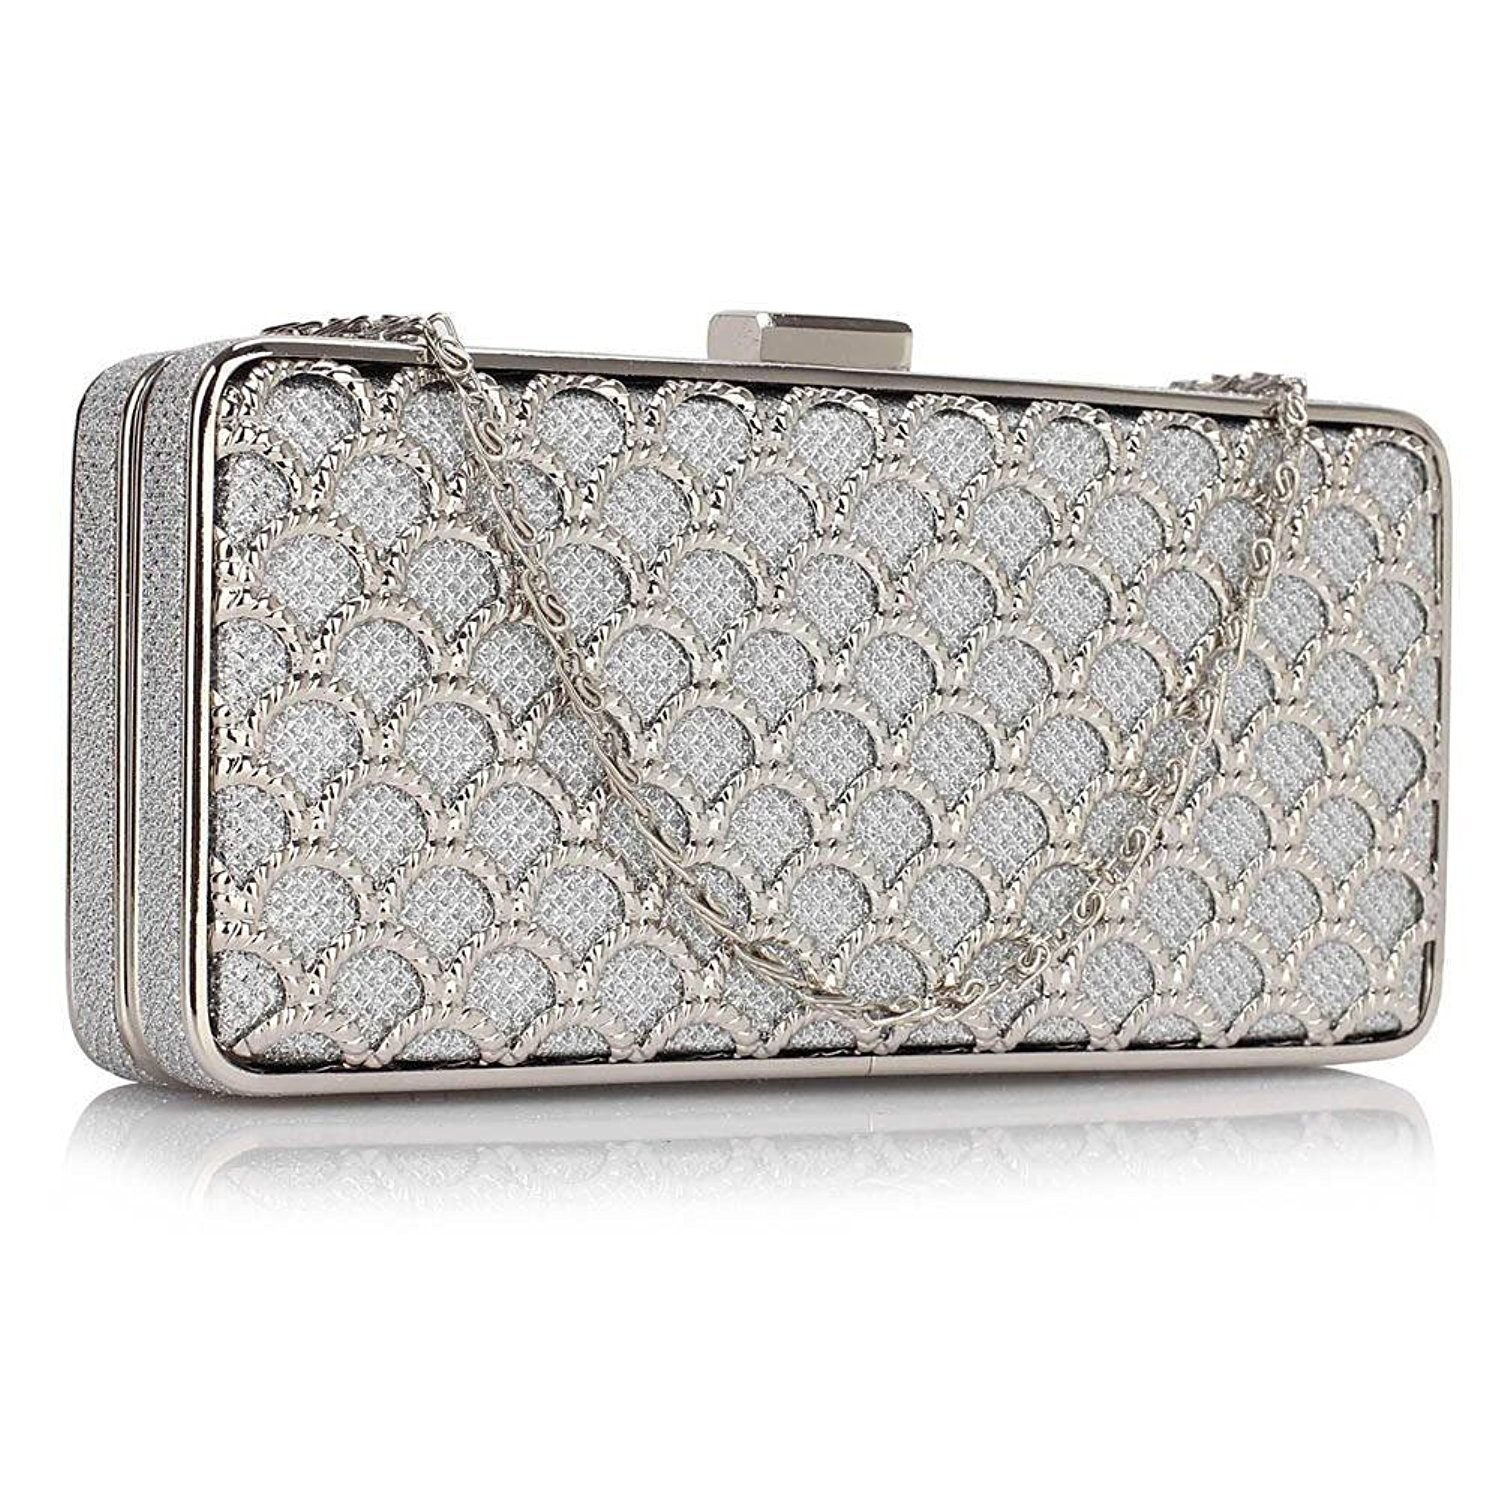 07cf84de97 Get Quotations · Clutch Bags For Women Womens Clutch Bags Ladies Crystal  Evening Prom Party Wedding Bags